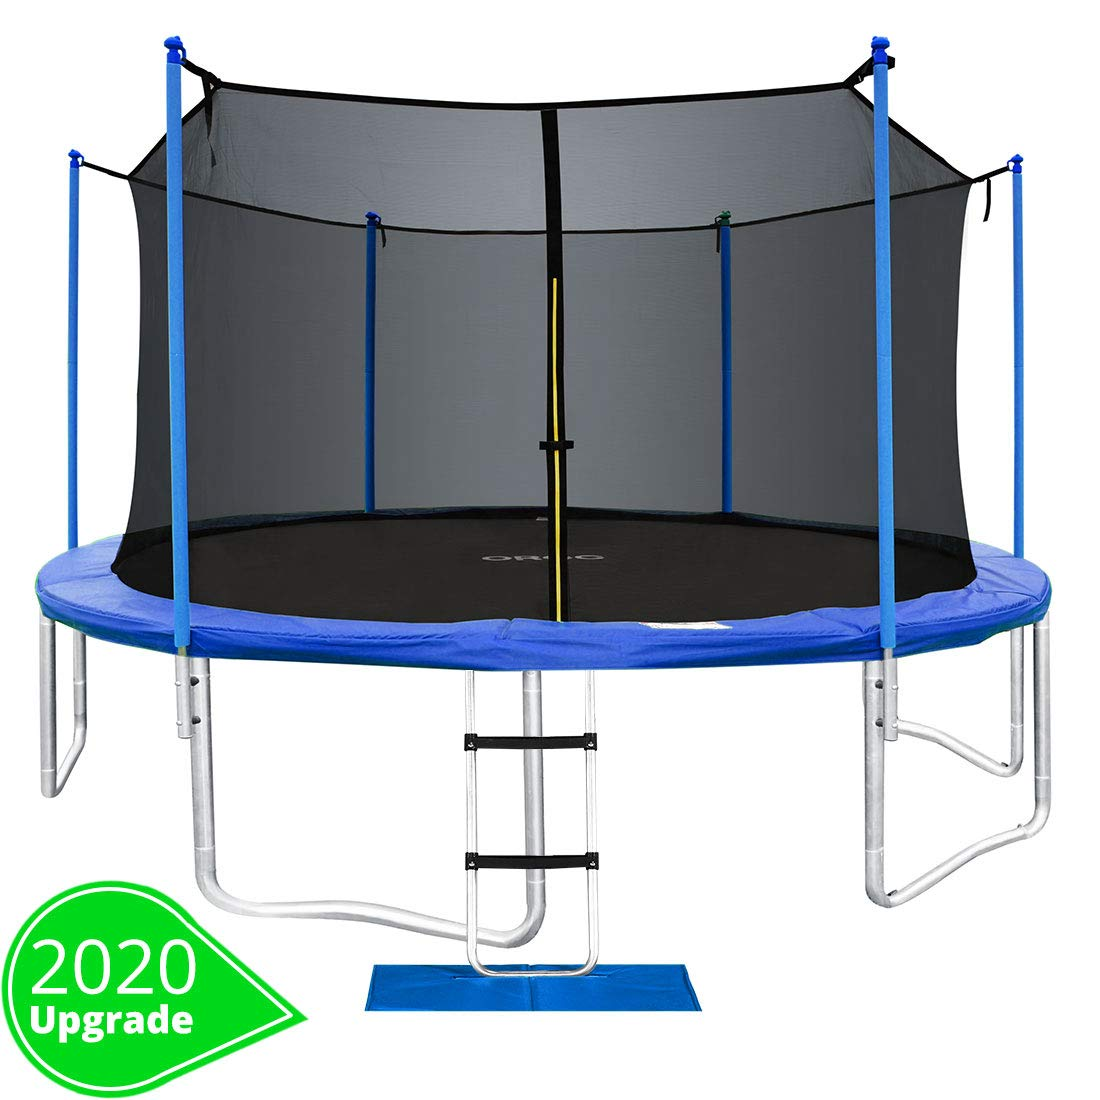 ORCC New Upgrade15 14 12 10FT Trampoline with Safety Enclosure Net Wind Stakes Rain Cover Ladder,Outdoor Trampoline with TUV Certificated by ORCC